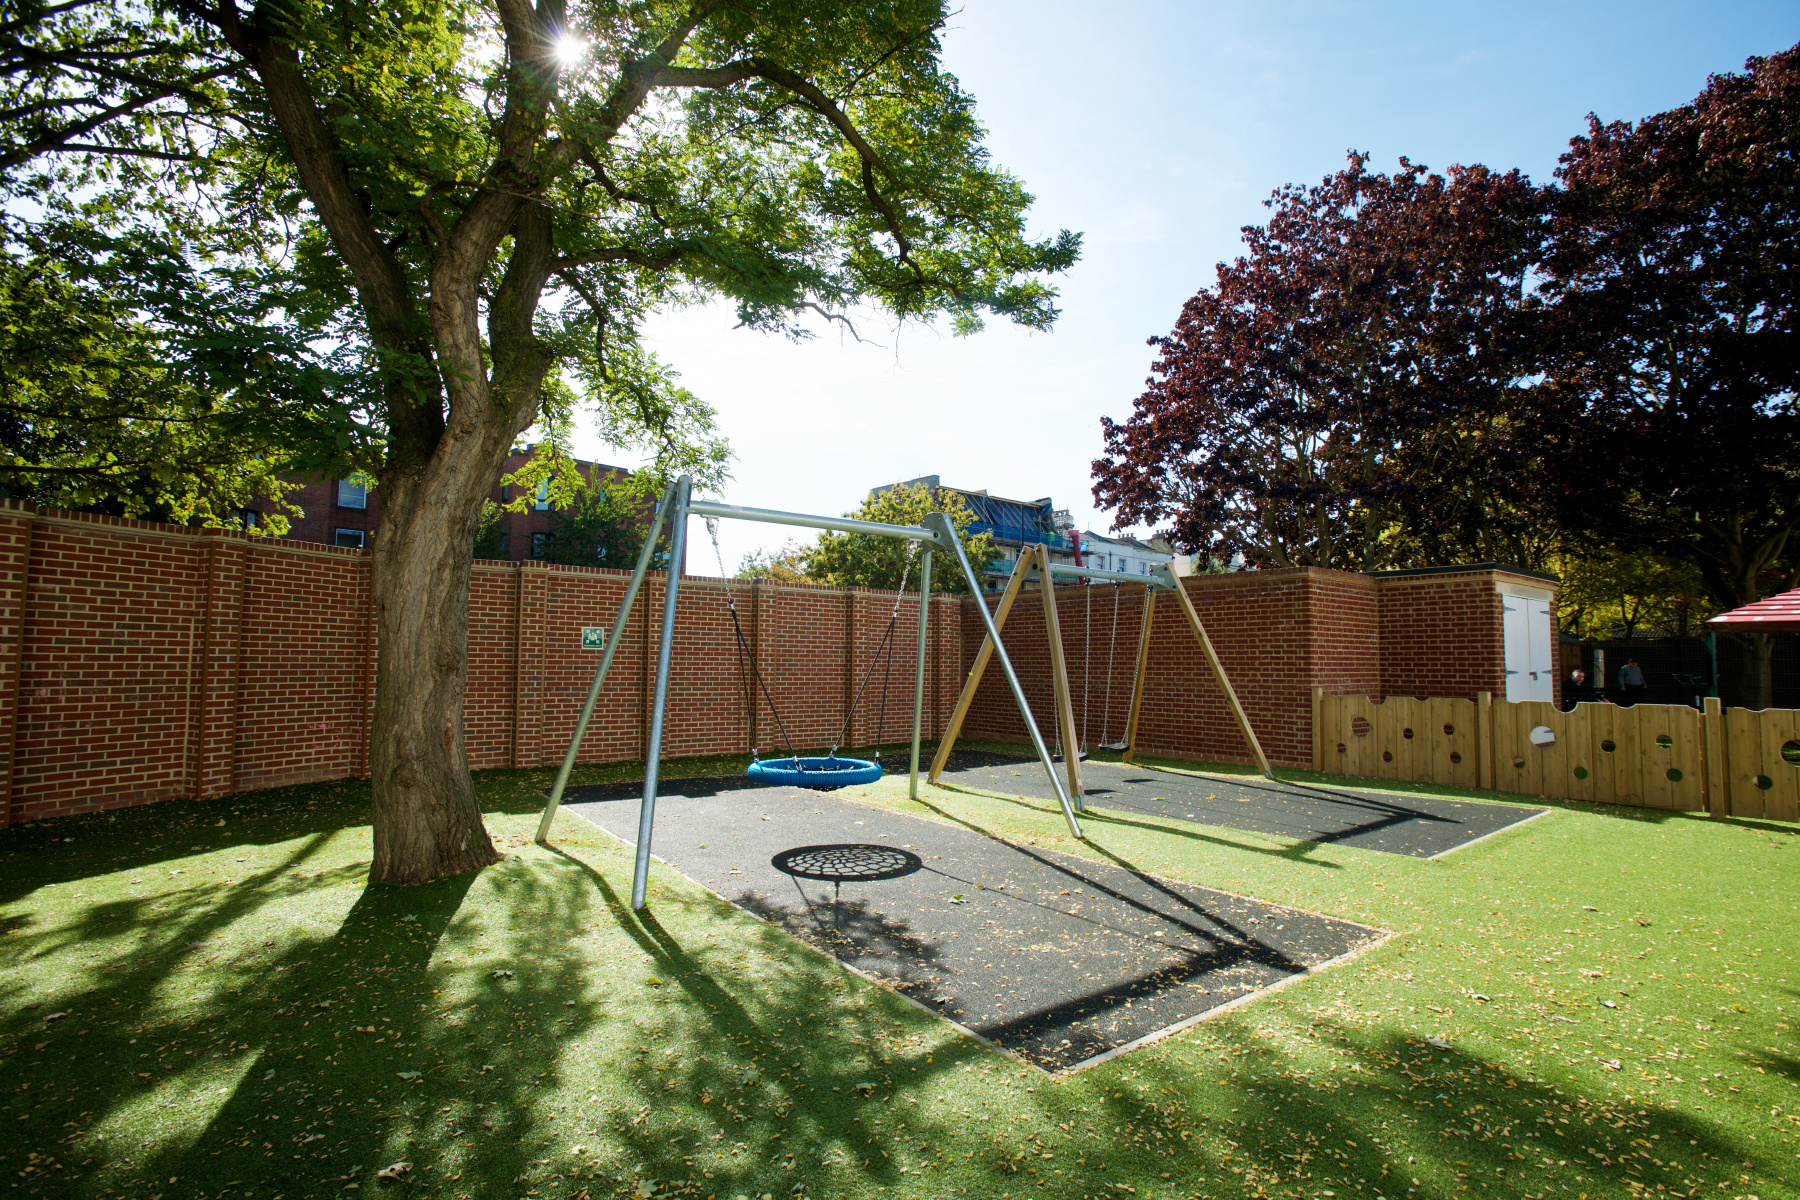 Large modern swing in a walled garden with a large tree in the sunshine